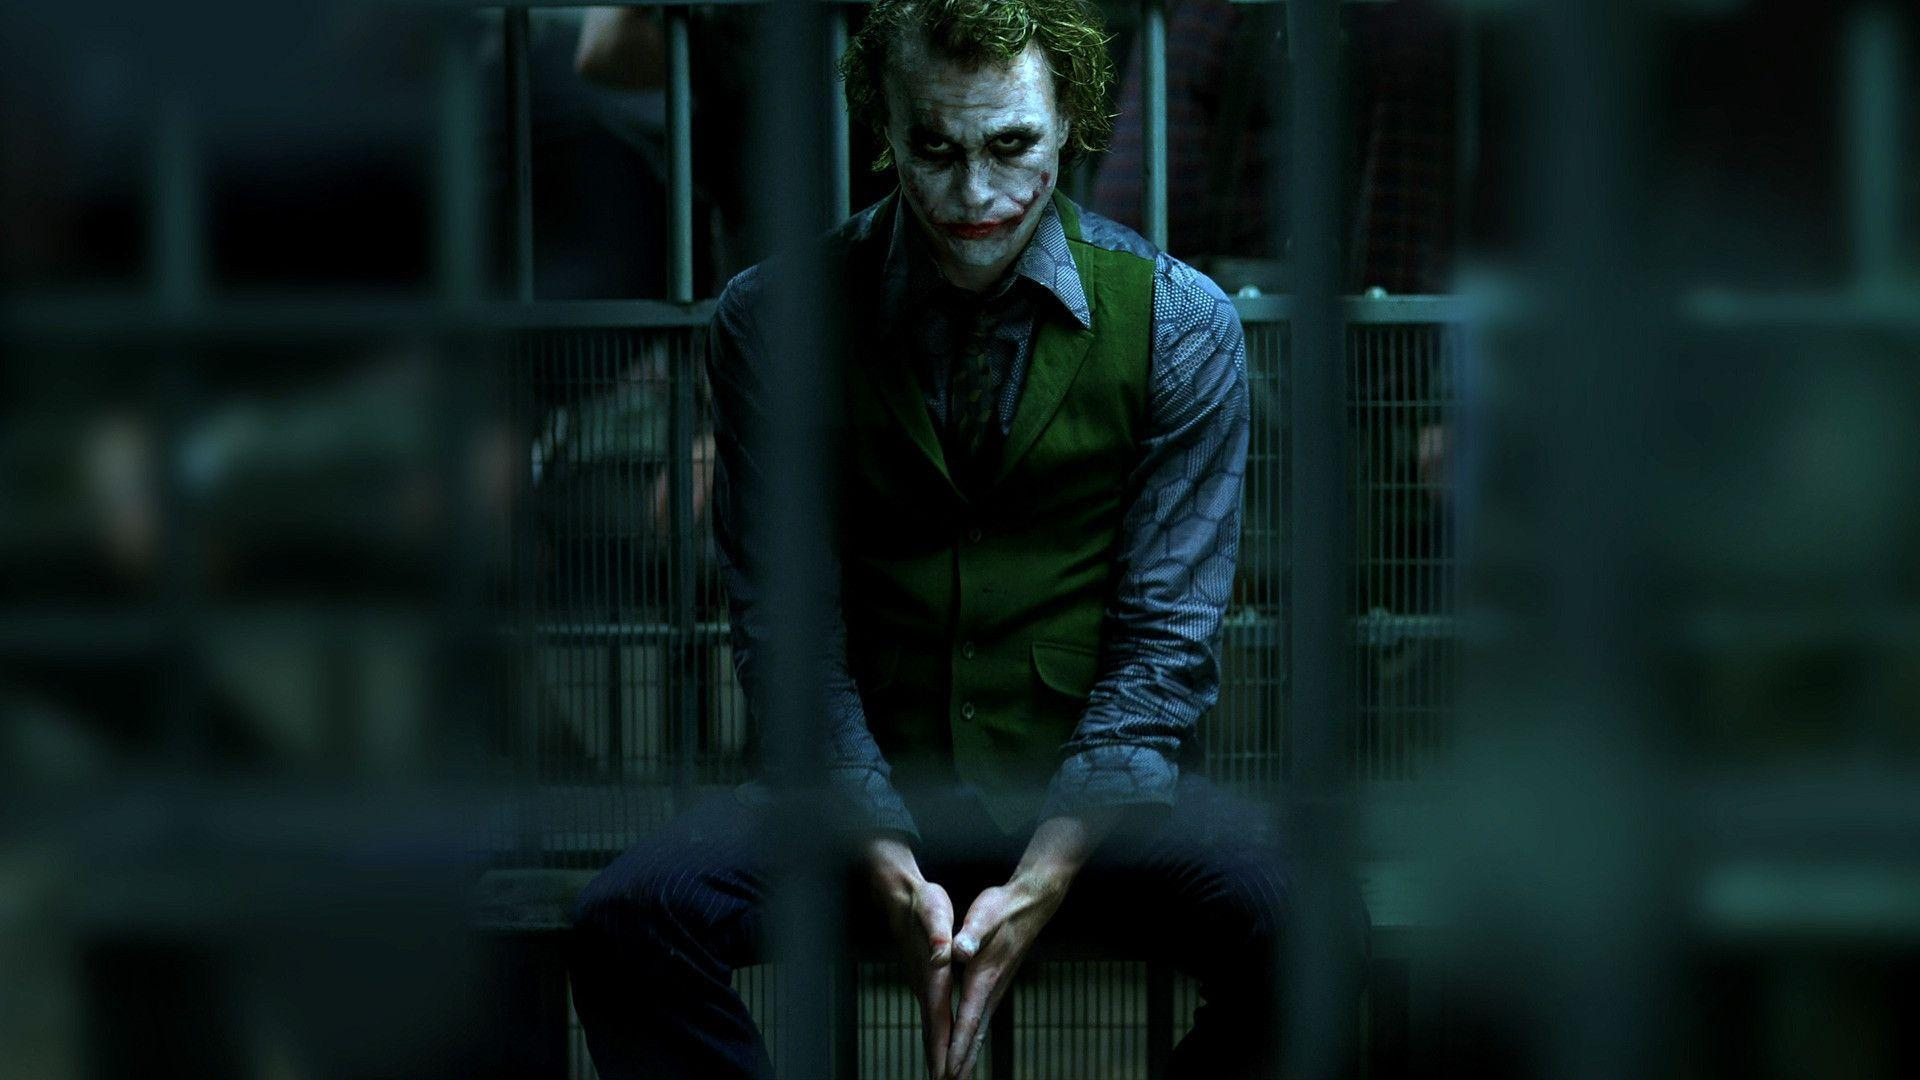 The Joker - The Dark Knight Wallpaper | High Quality Wallpaper